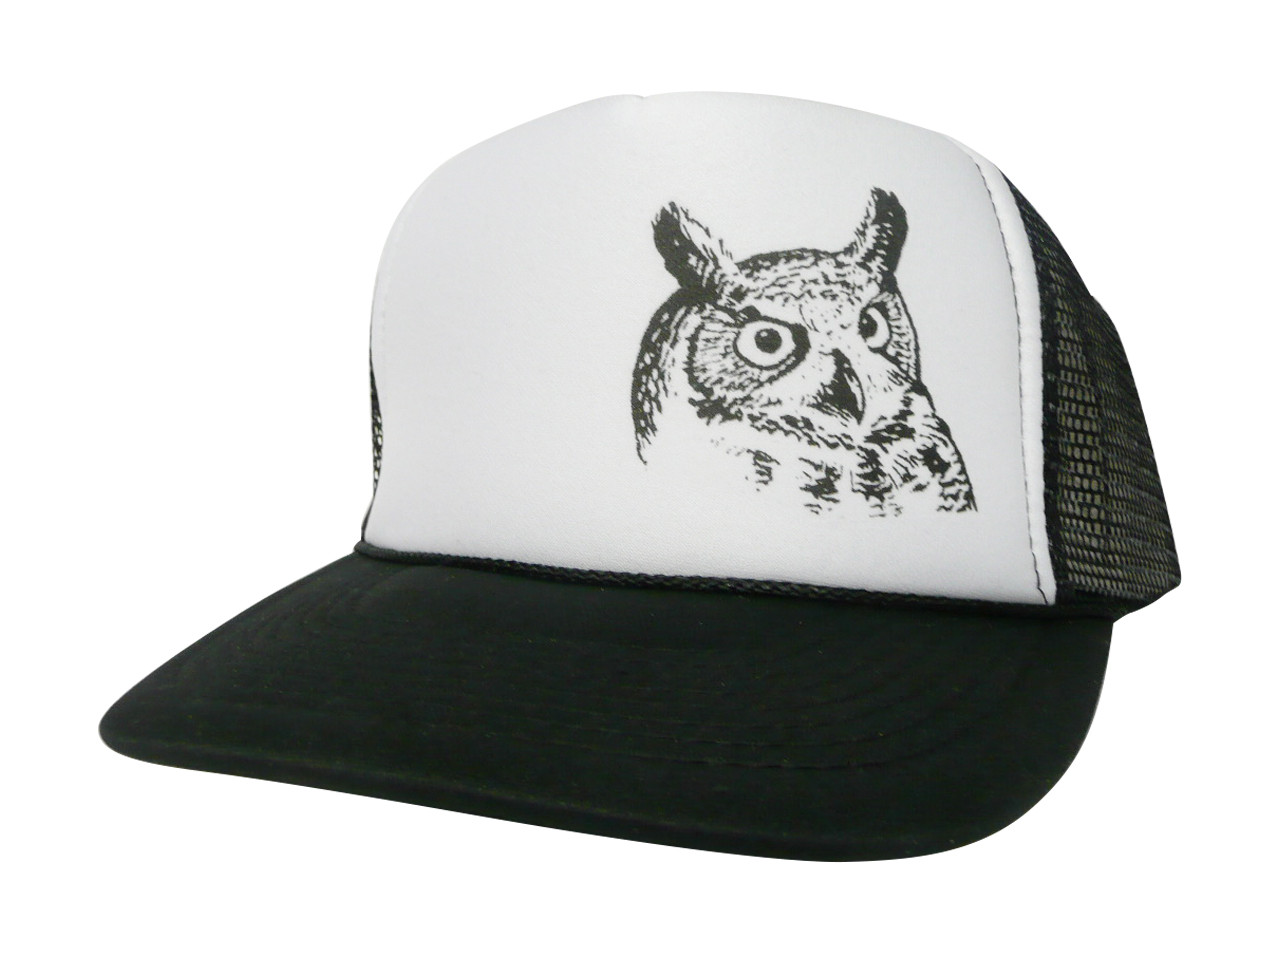 3c5d8801 As shown in photo then color of the hat . ex. Black/white front